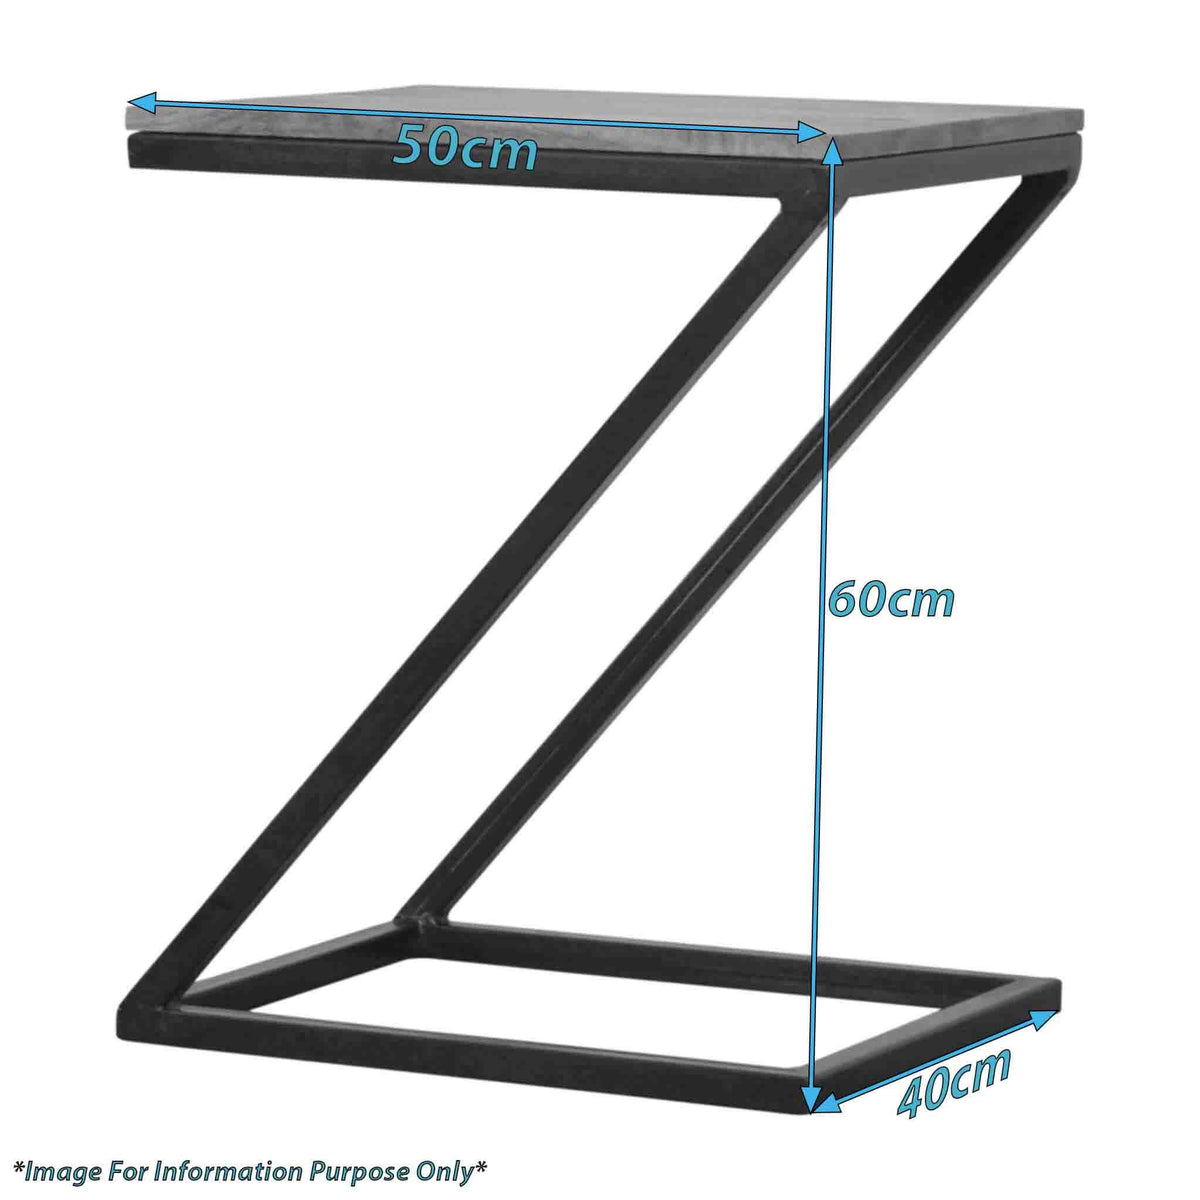 Dimensions for The Artisan Industrial Z shaped Side Table